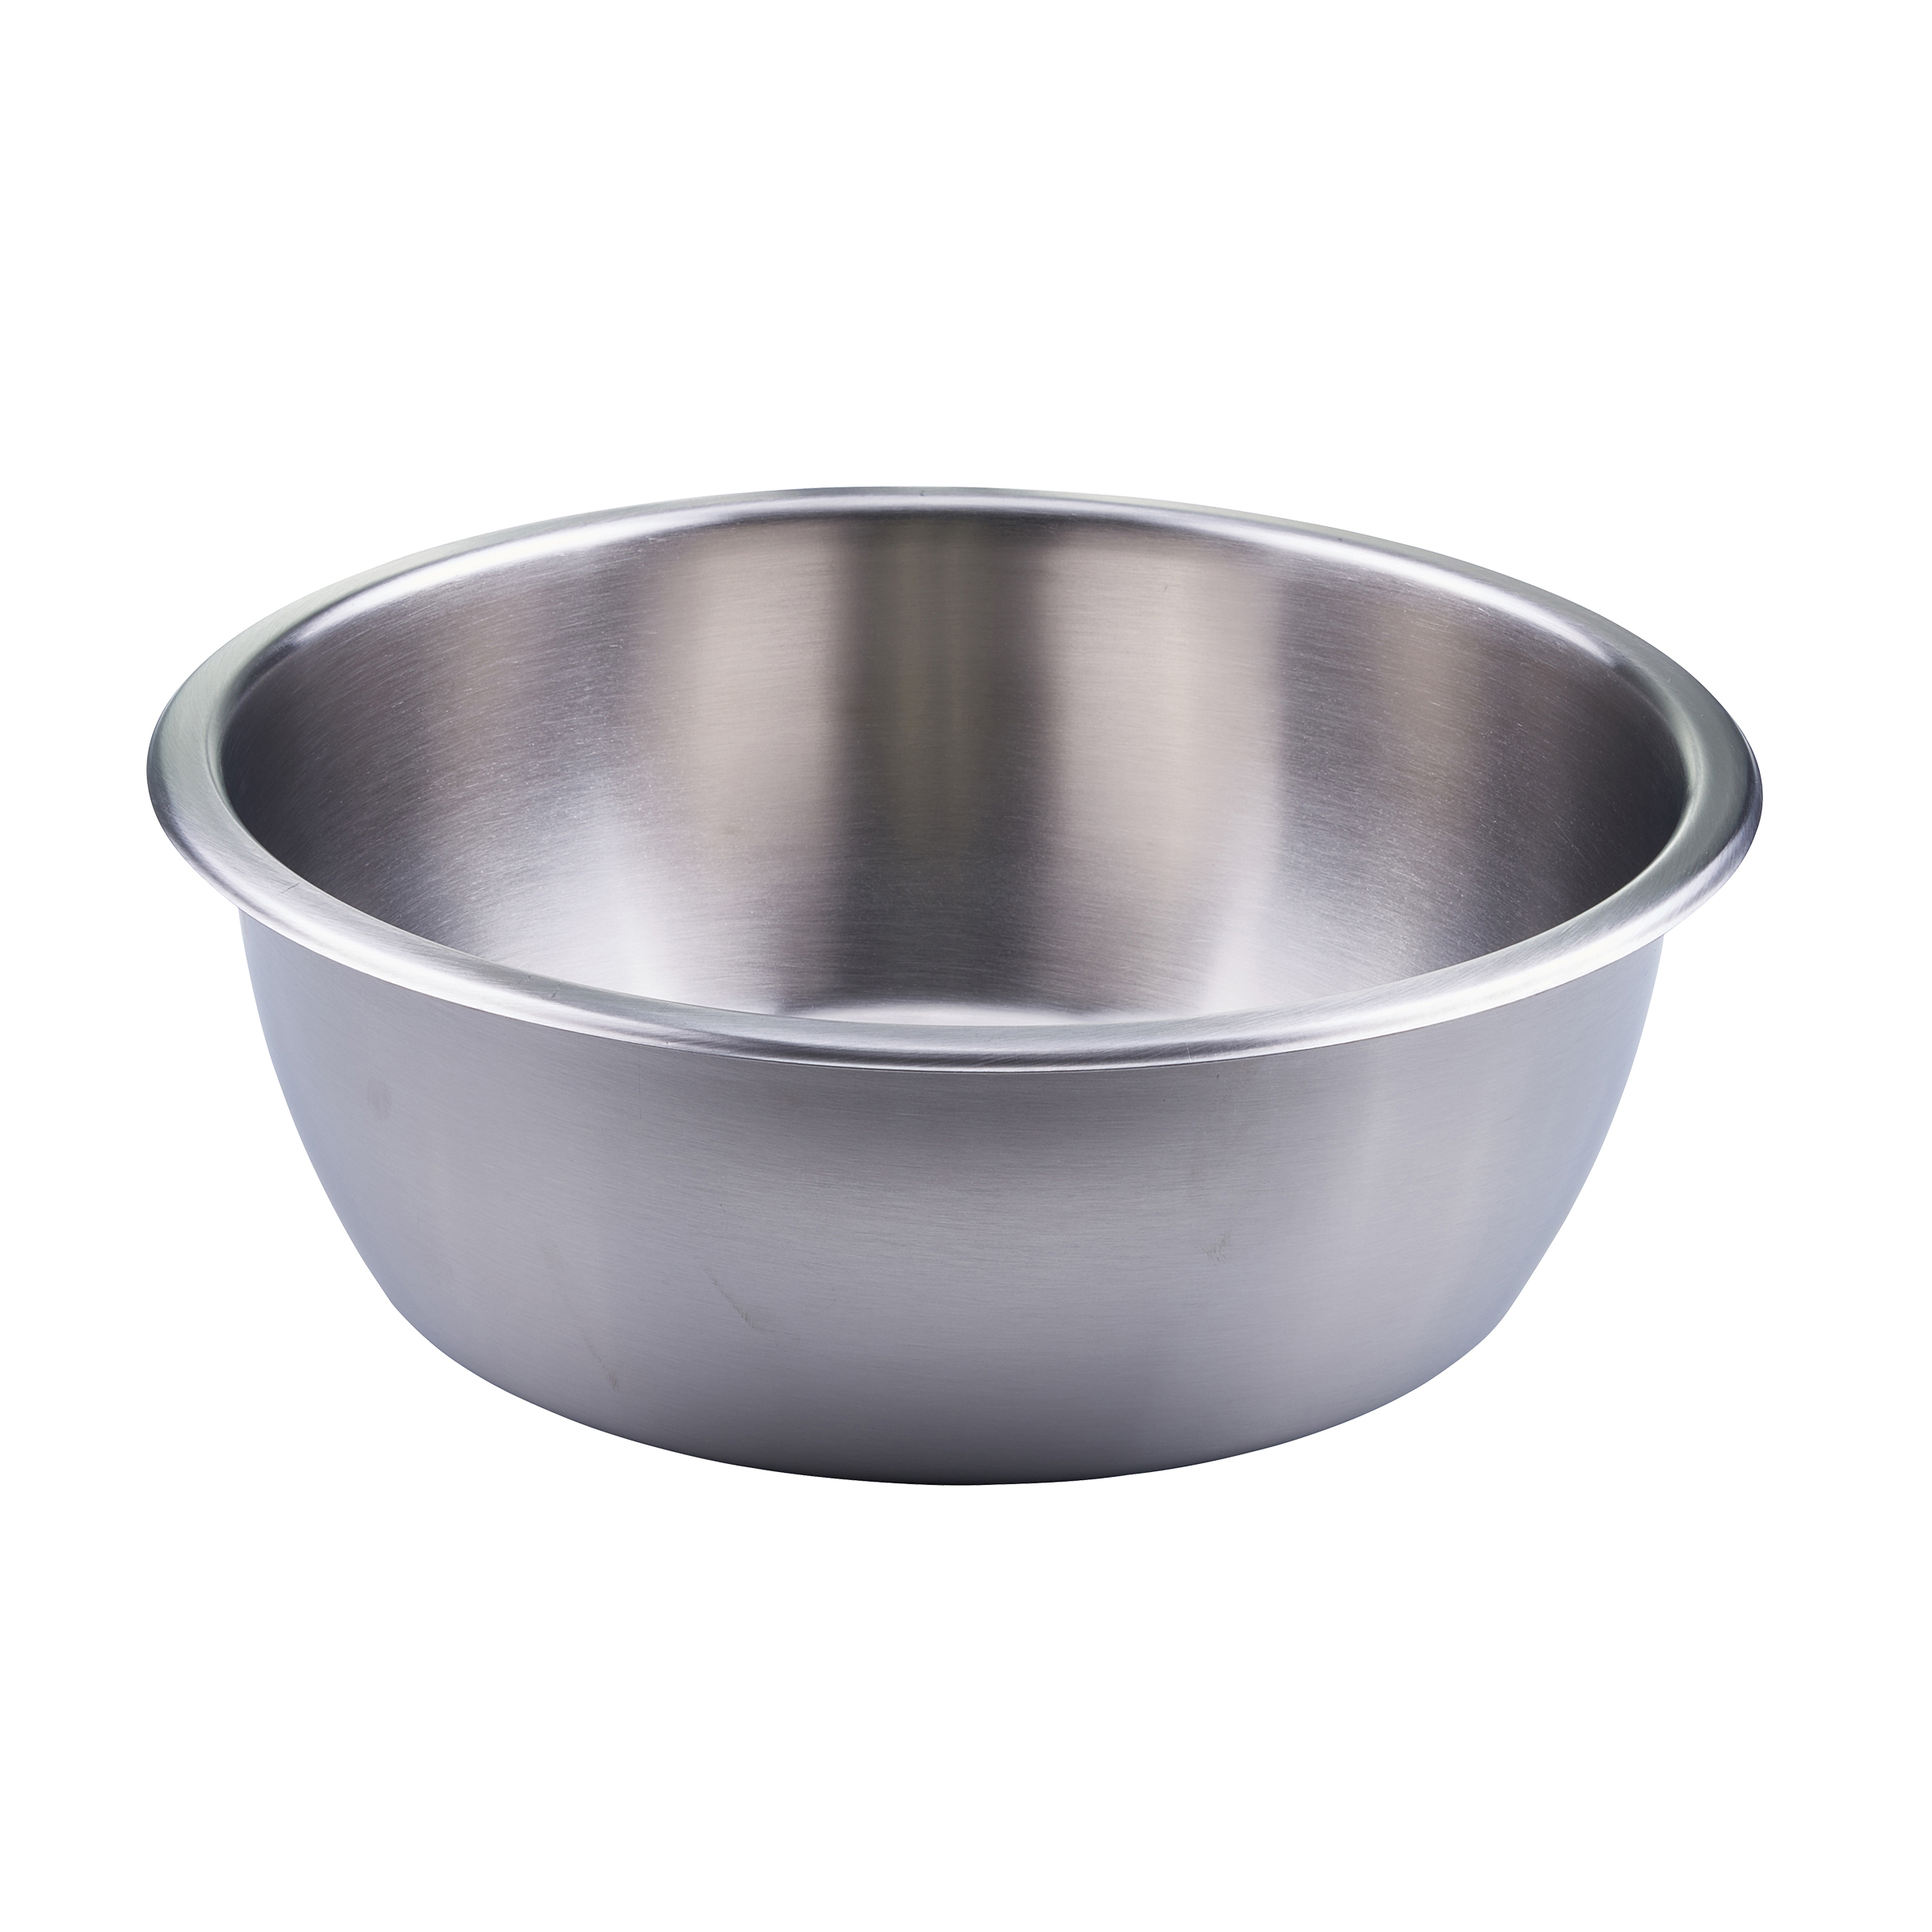 Winco 708-WP chafing dish pan